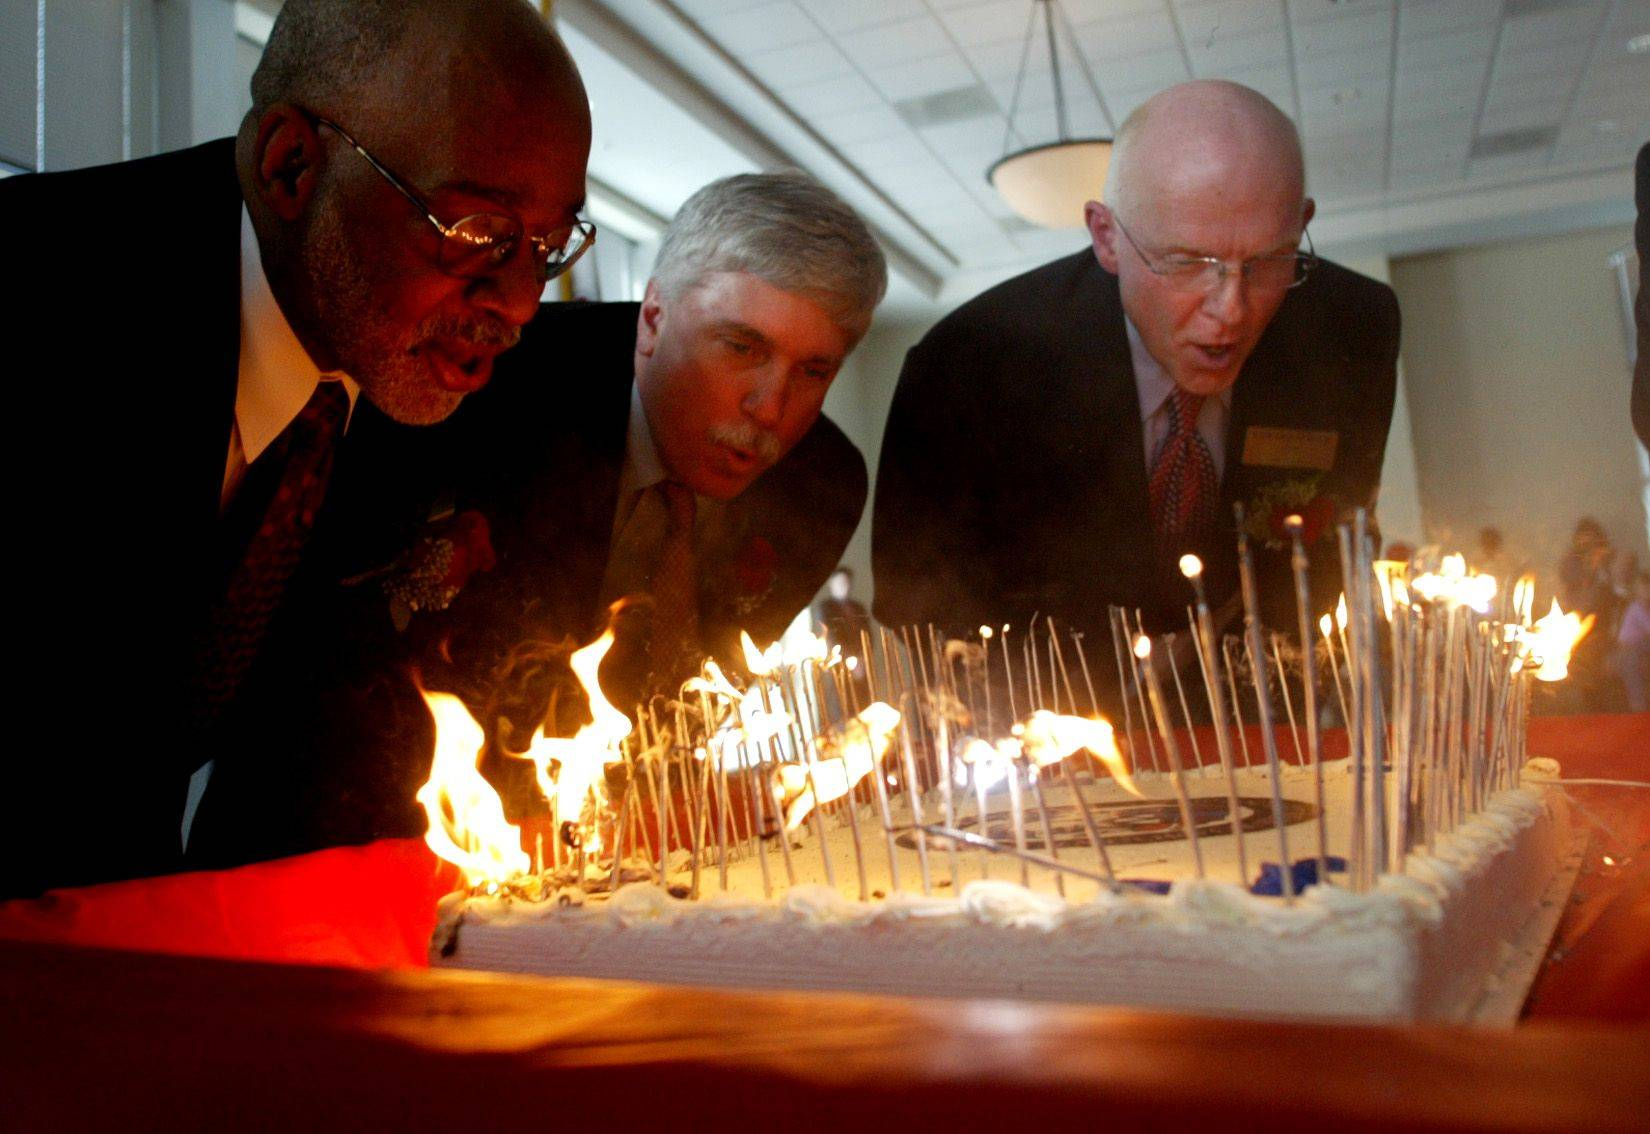 Elgin Mayor Ed Schock, far right, and Councilmen John Walters, center, and Robert Gilliam blow out the candles on Elgin's 150th birthday cake in 2004.